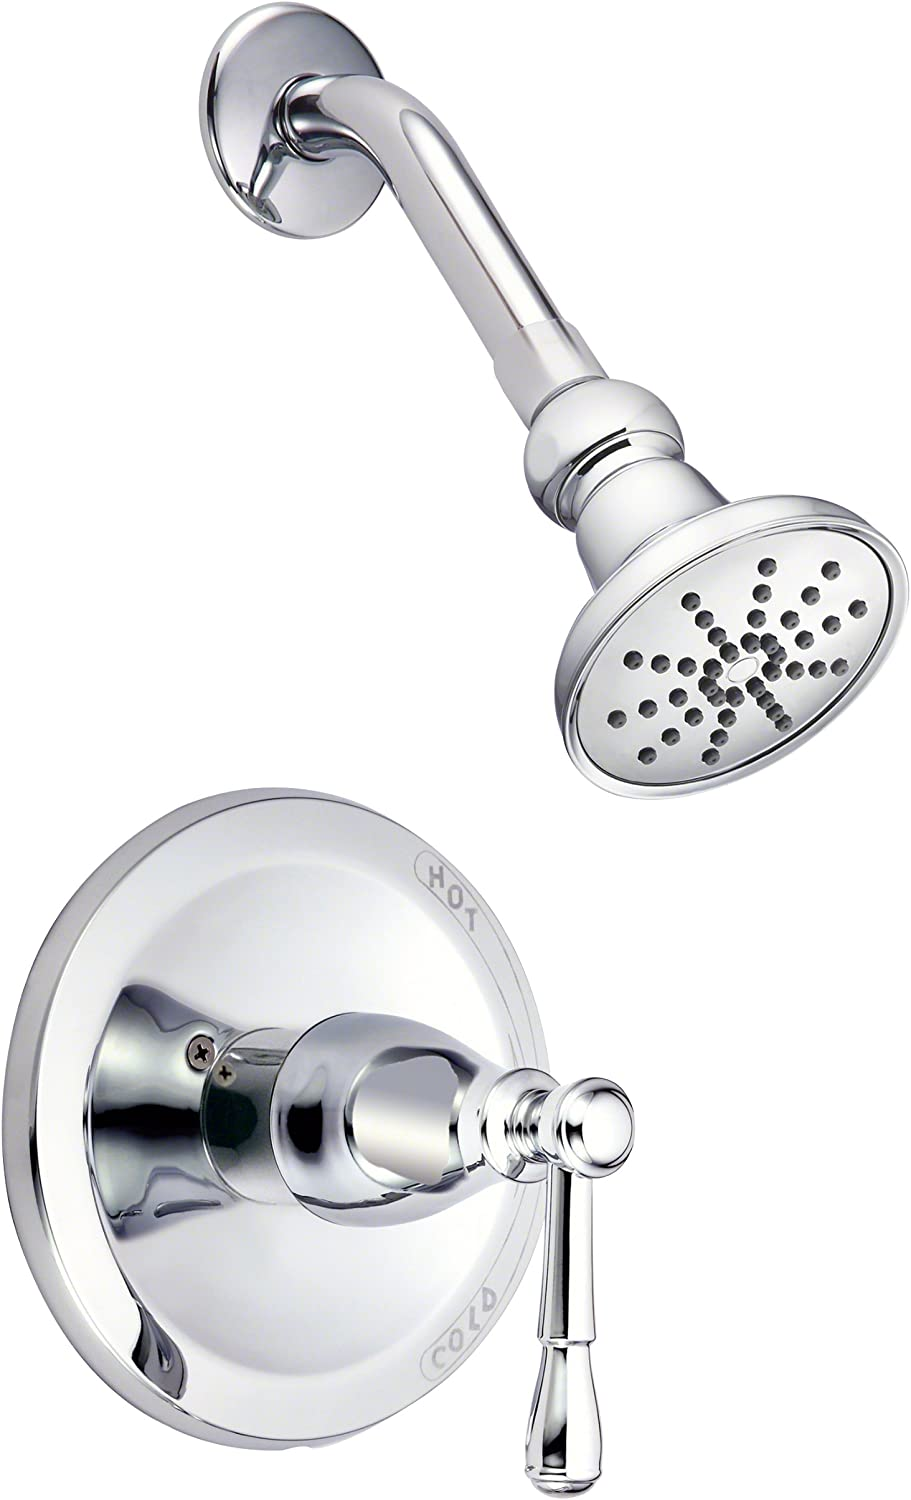 Danze D500515t Eastham Single Handle Shower Trim Kit 2 5 Gpm Valve Not Included Chrome Fixed Showerheads Amazon Com